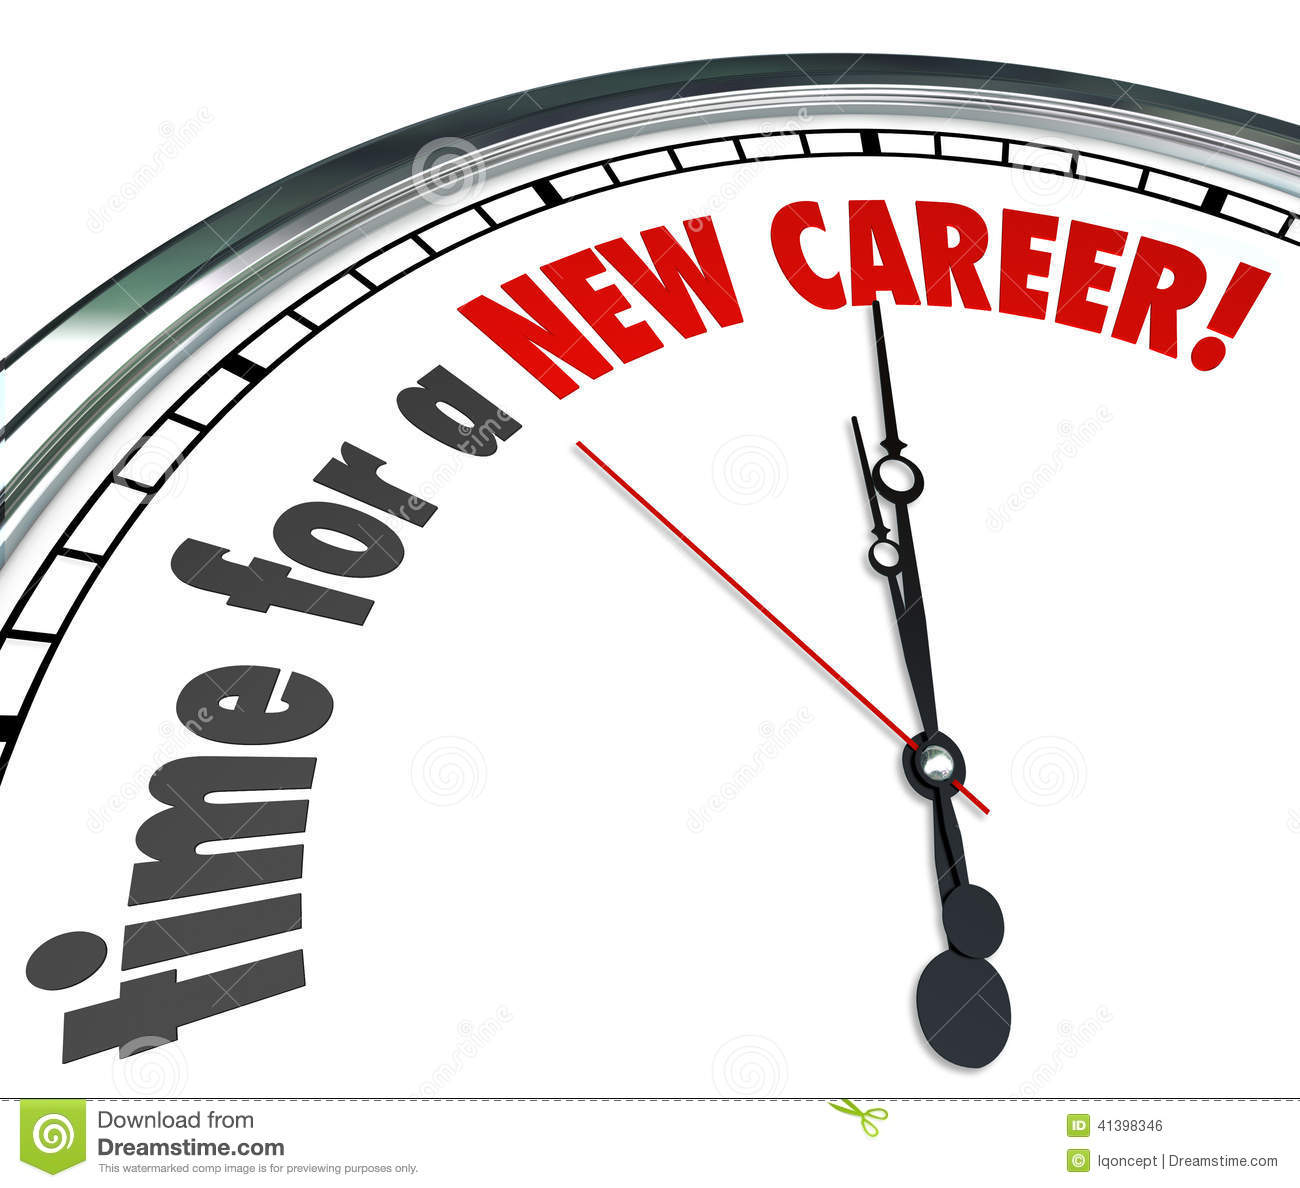 career change what job resume builder career change what job careerbuilder time for a new career words on a clock face to